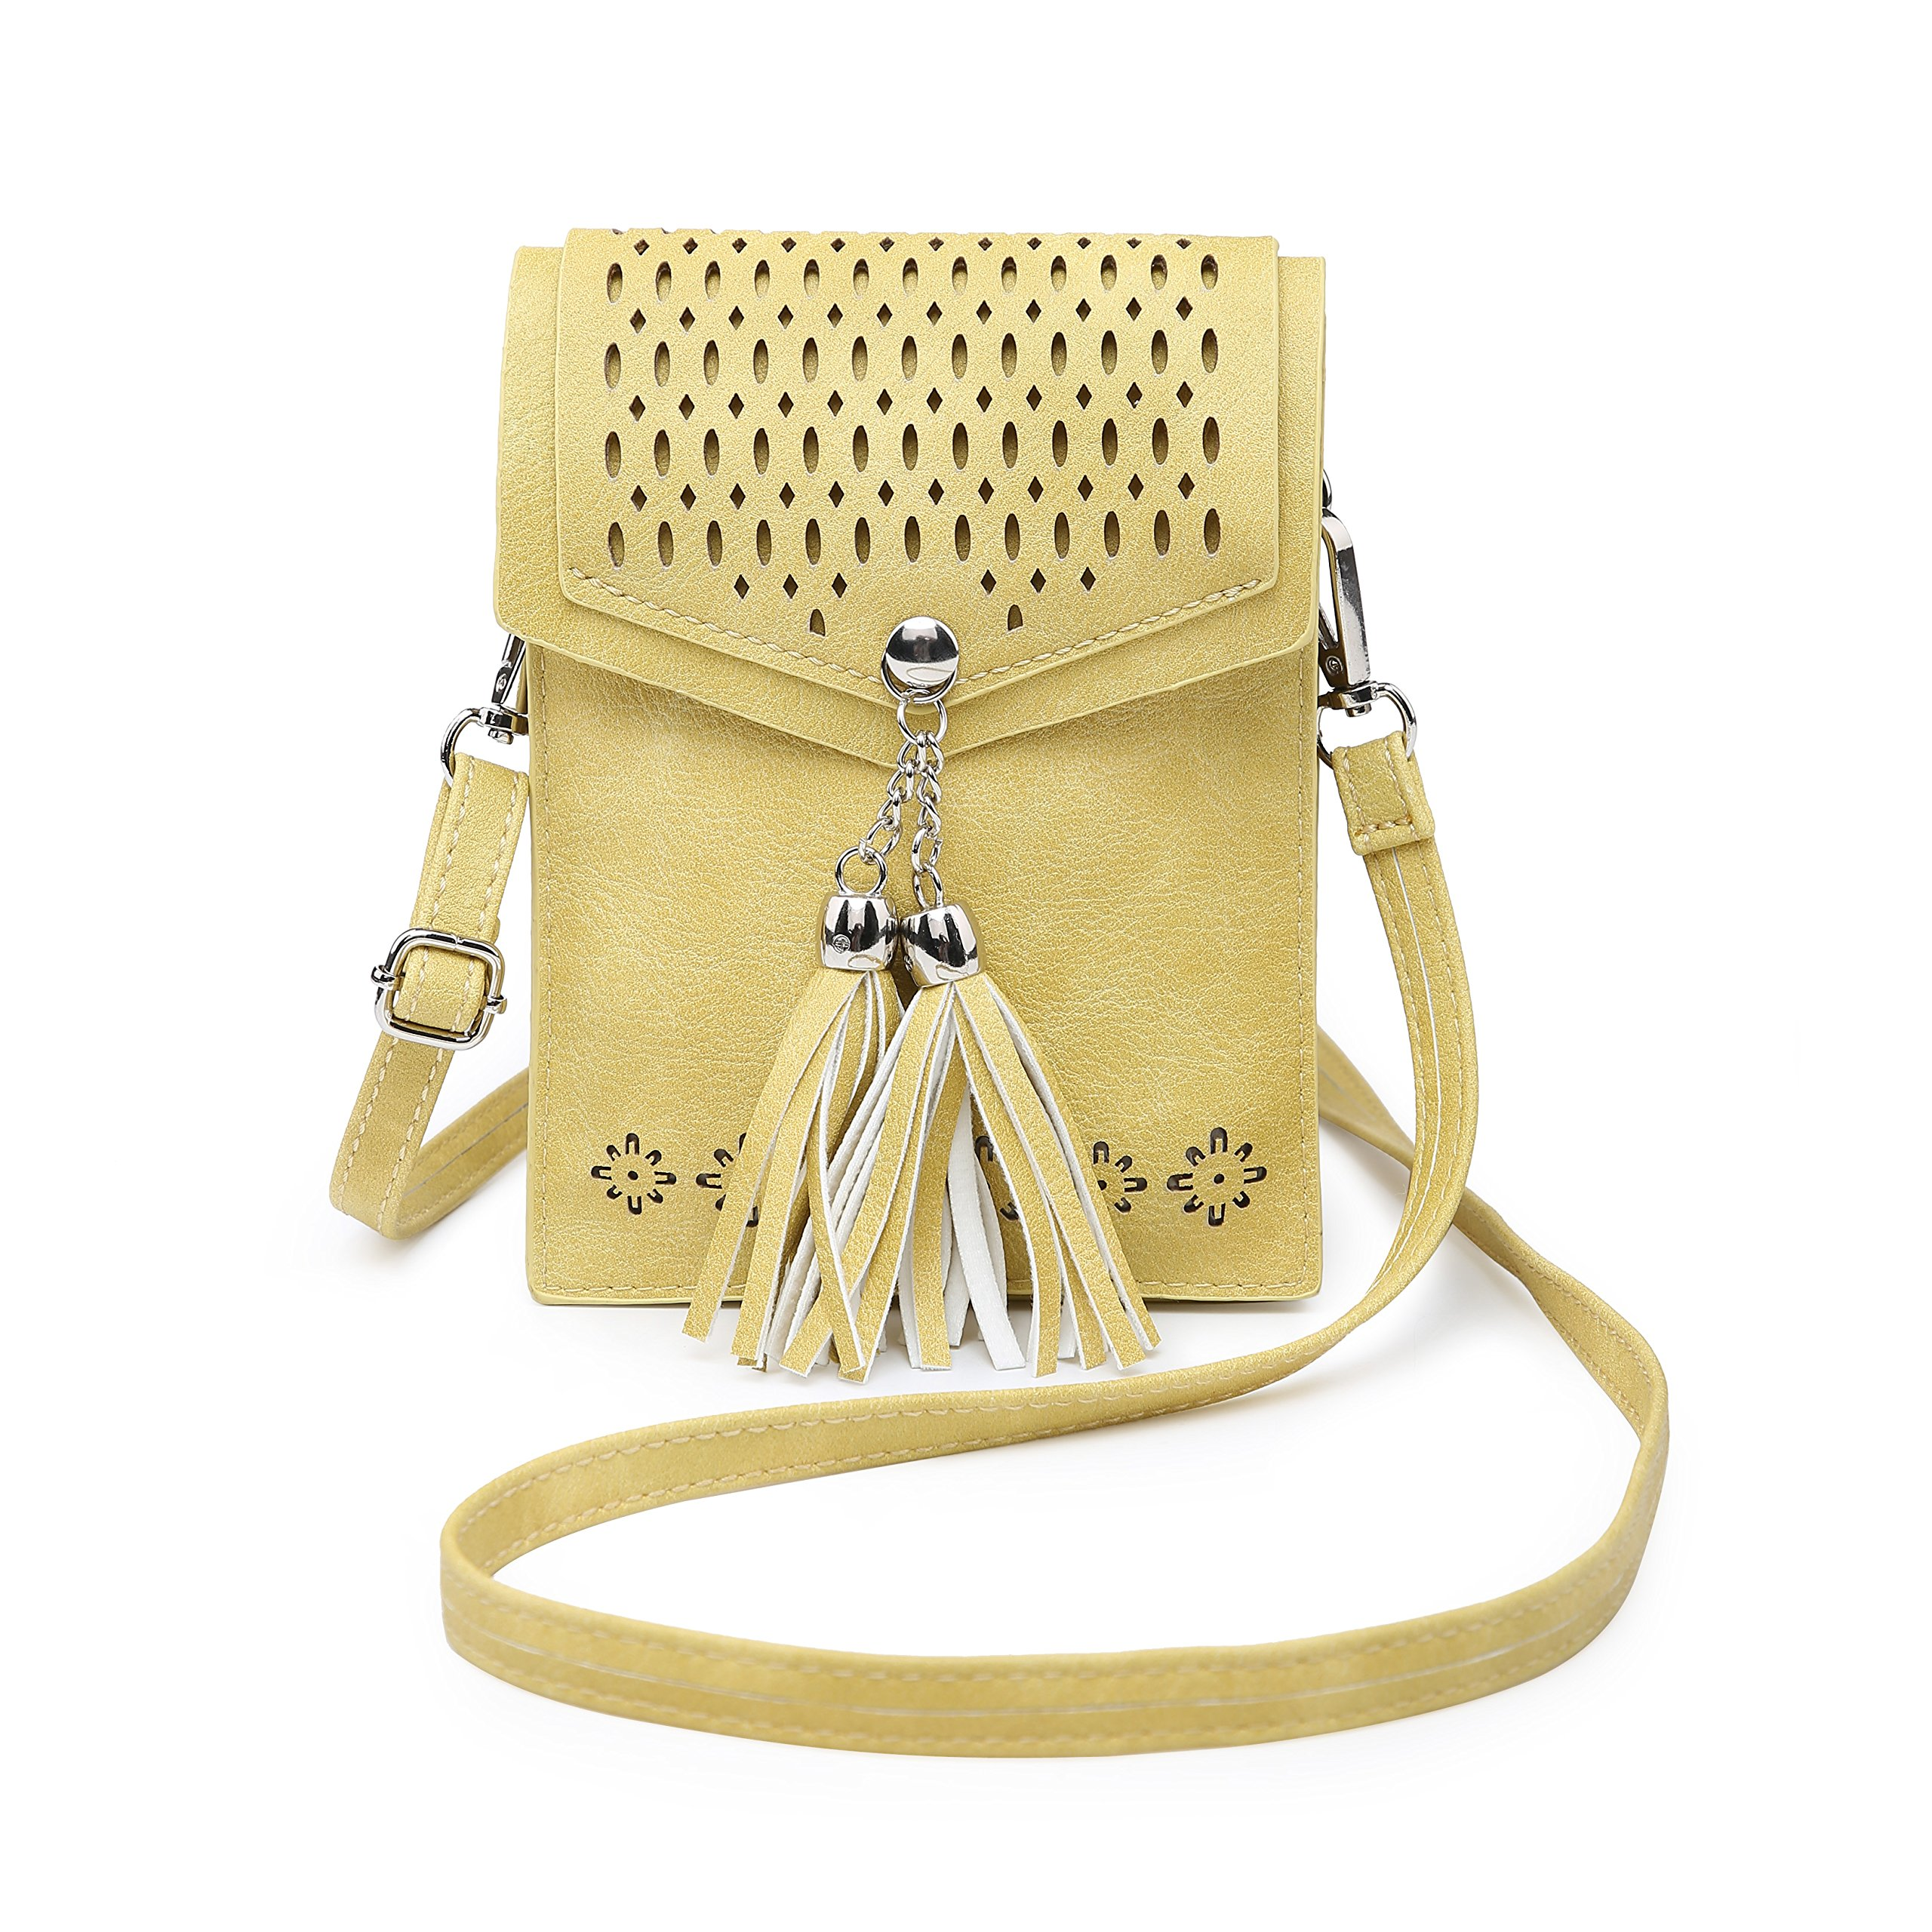 Women Small Crossbody Bag, seOSTO Tassel Cell Phone Purse Wallet Bags (Yellow) by seOSTO